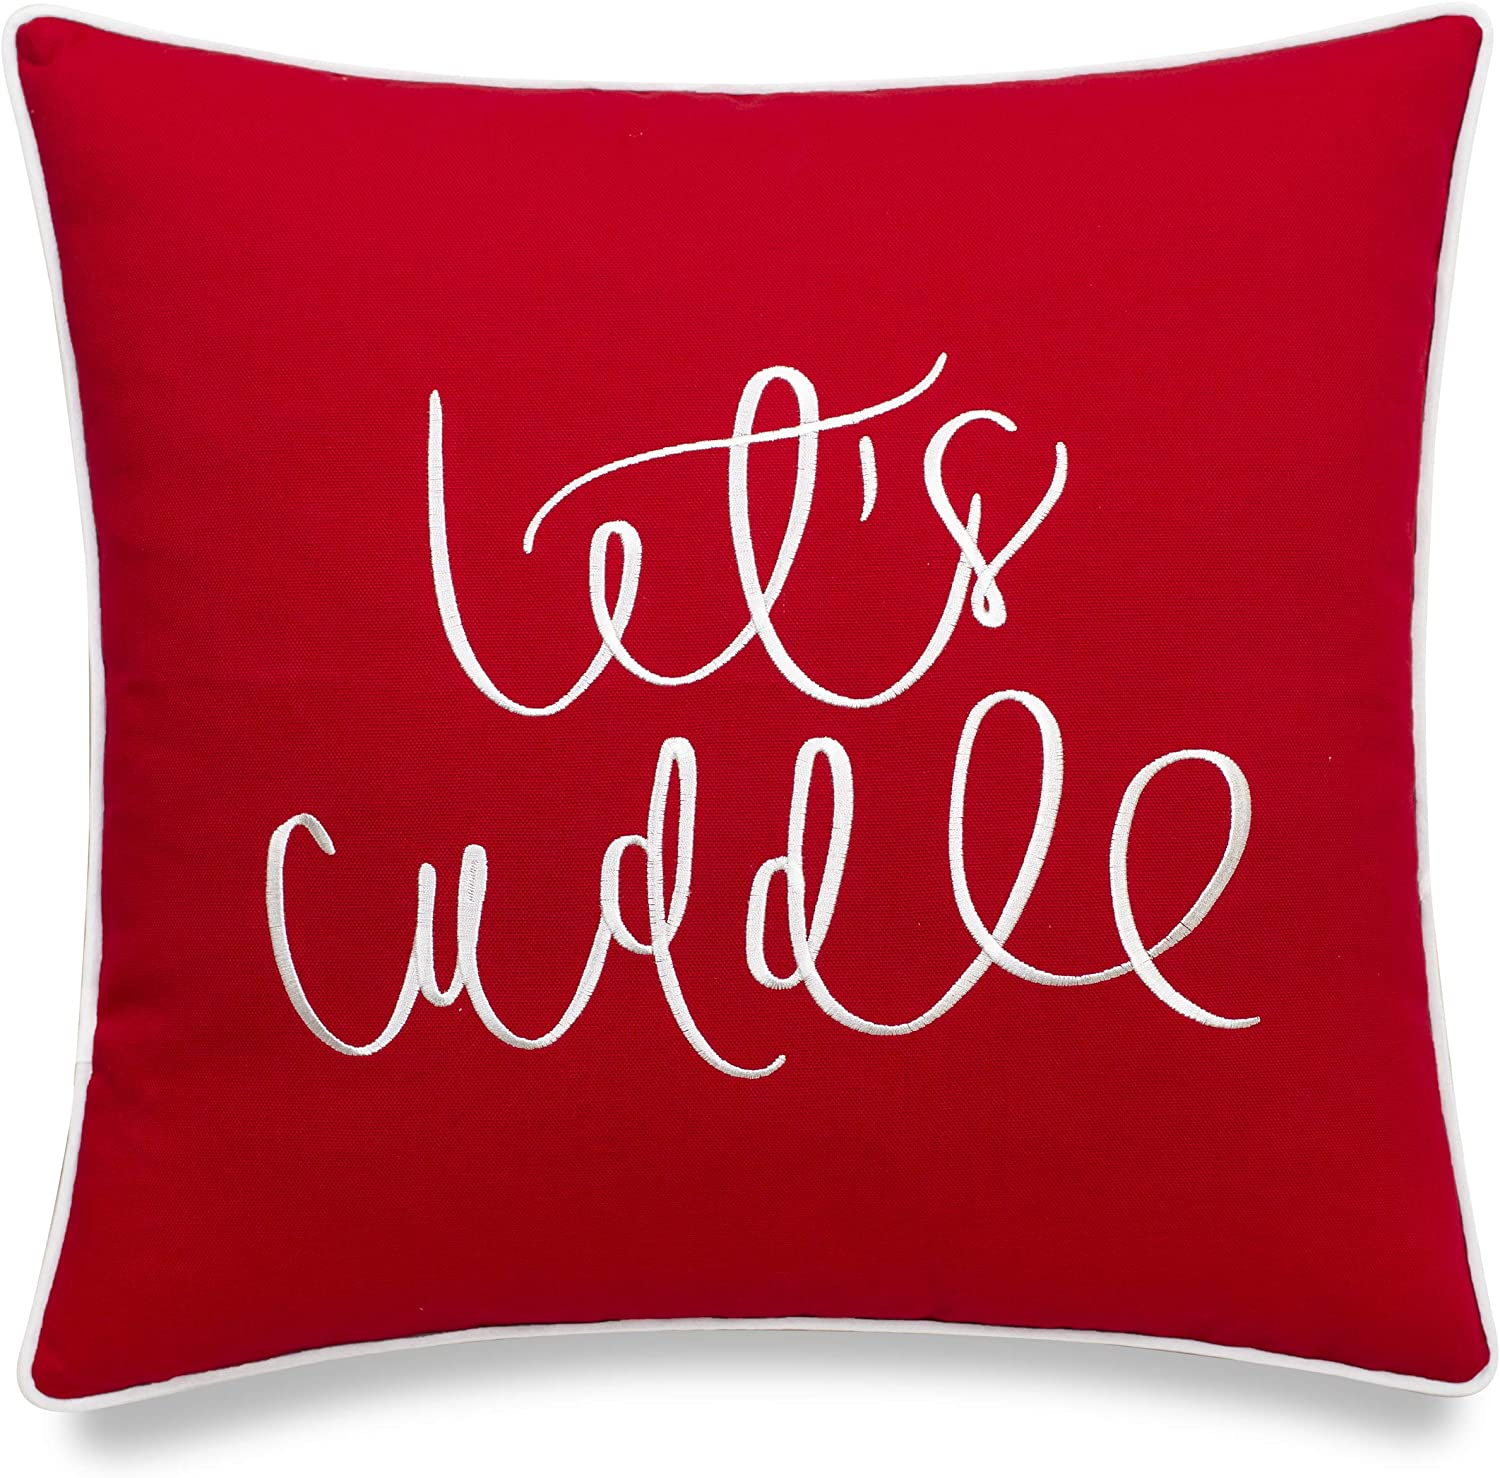 Vagmine Let S Cuddle Quote Embroidered Decorative Accent Square Throw Pillow Cover 18x18 Inches Red Home Kitchen